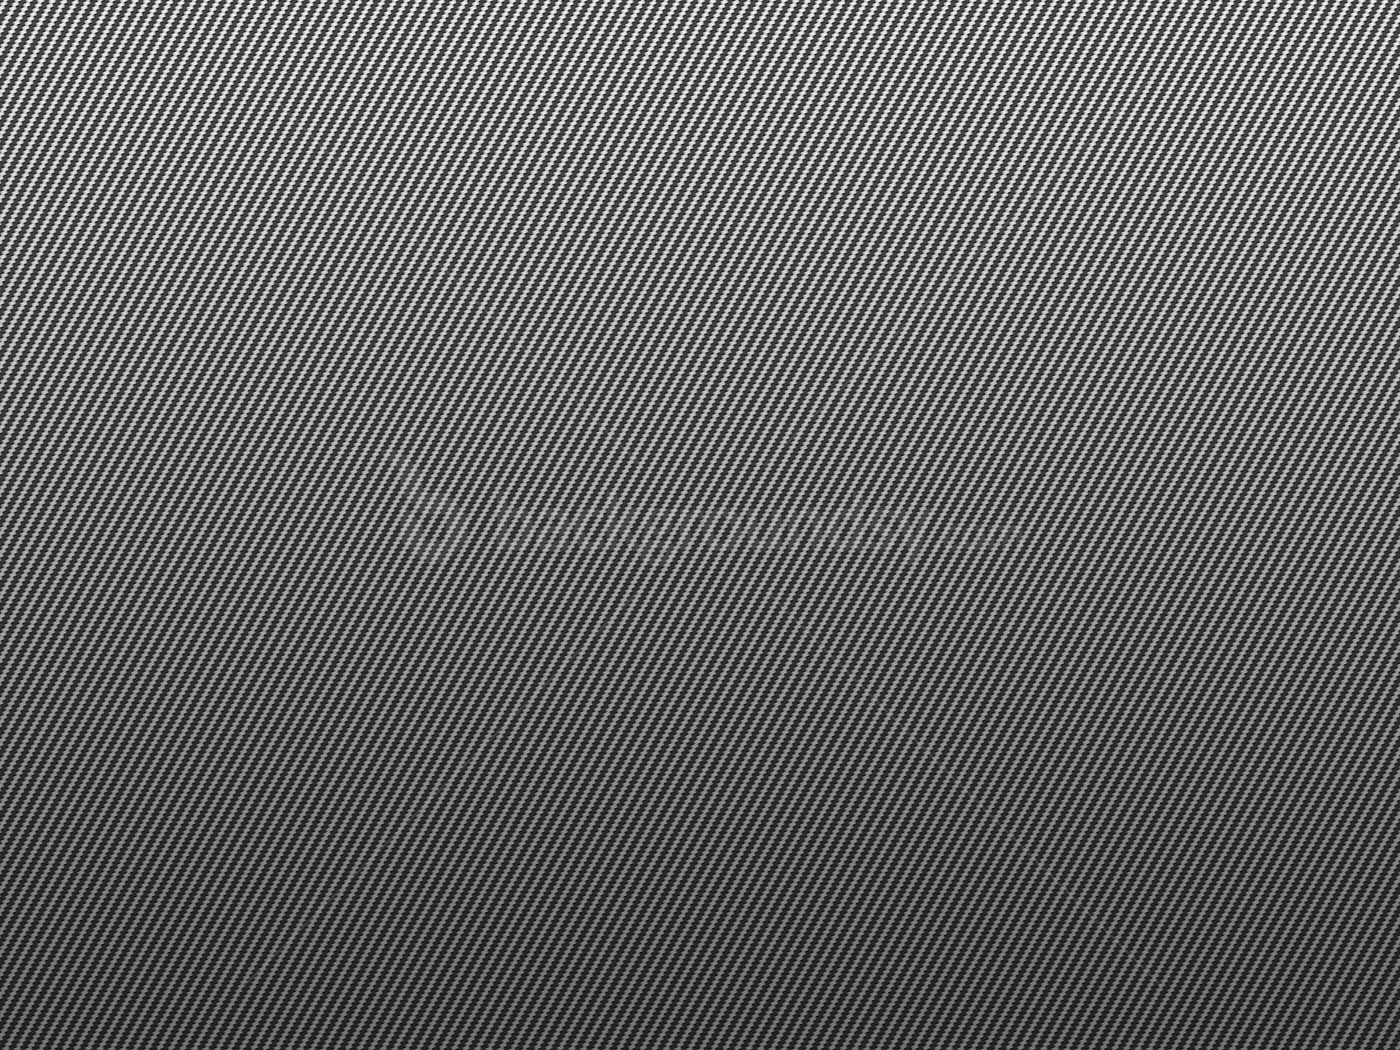 Home Wallpaper Hd Silver Carbon Fiber Backgroundsy Com